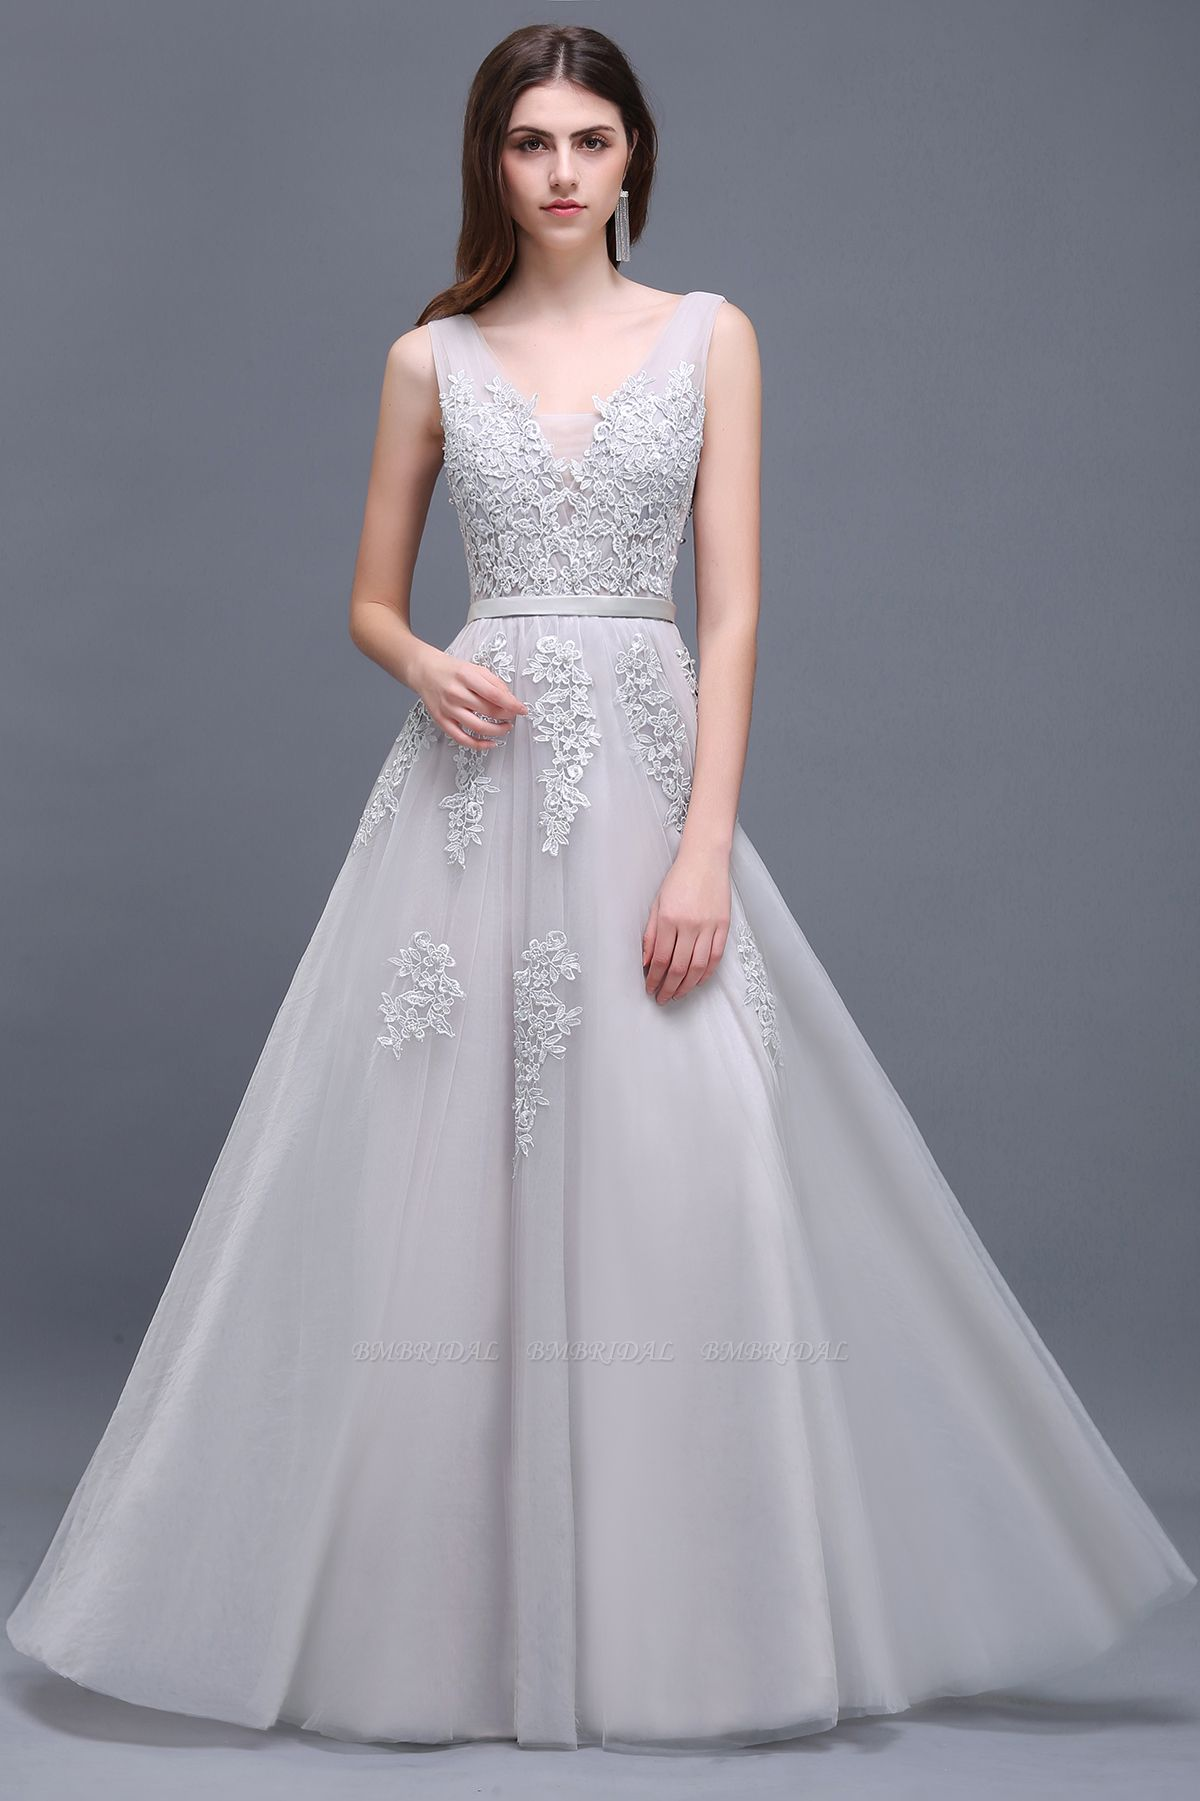 BMbirdal Gorgeous V-Neck Sleeveless Prom Dress With Lace Appliques